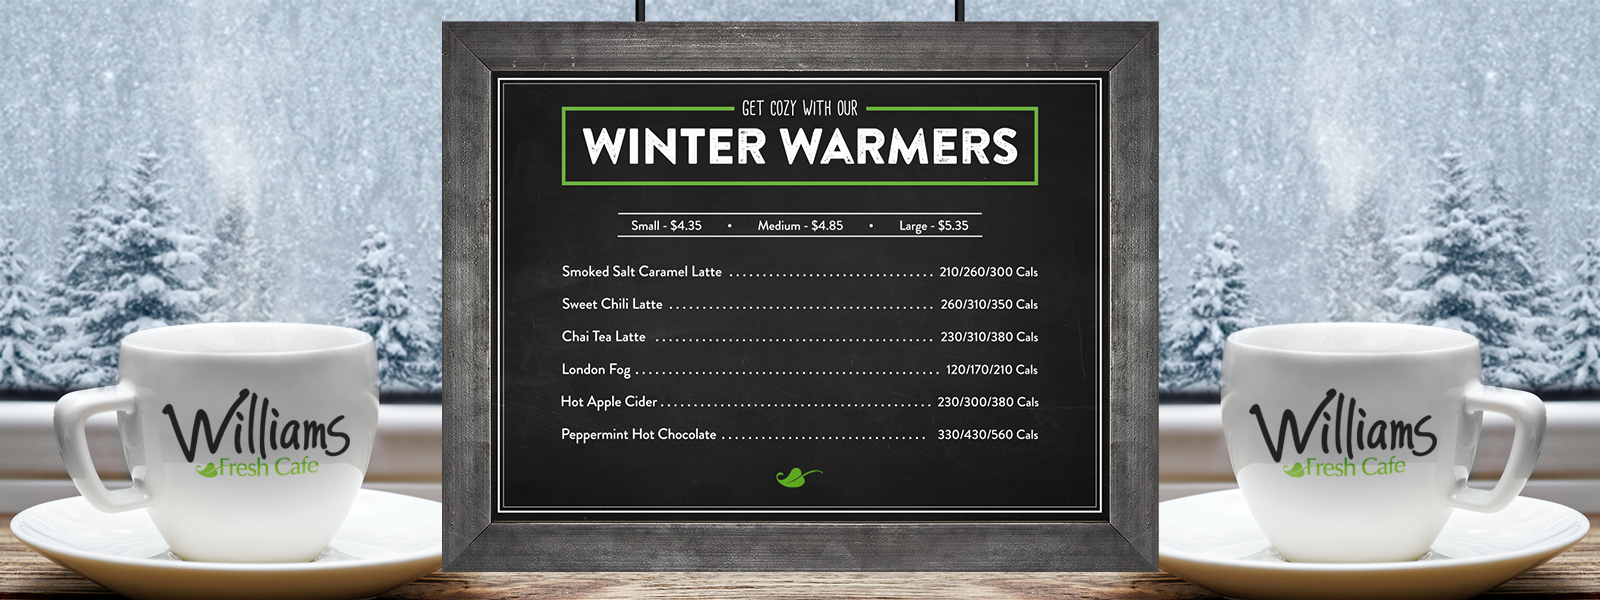 Updated 2019 Winter Warmers Premium Beverage Menu